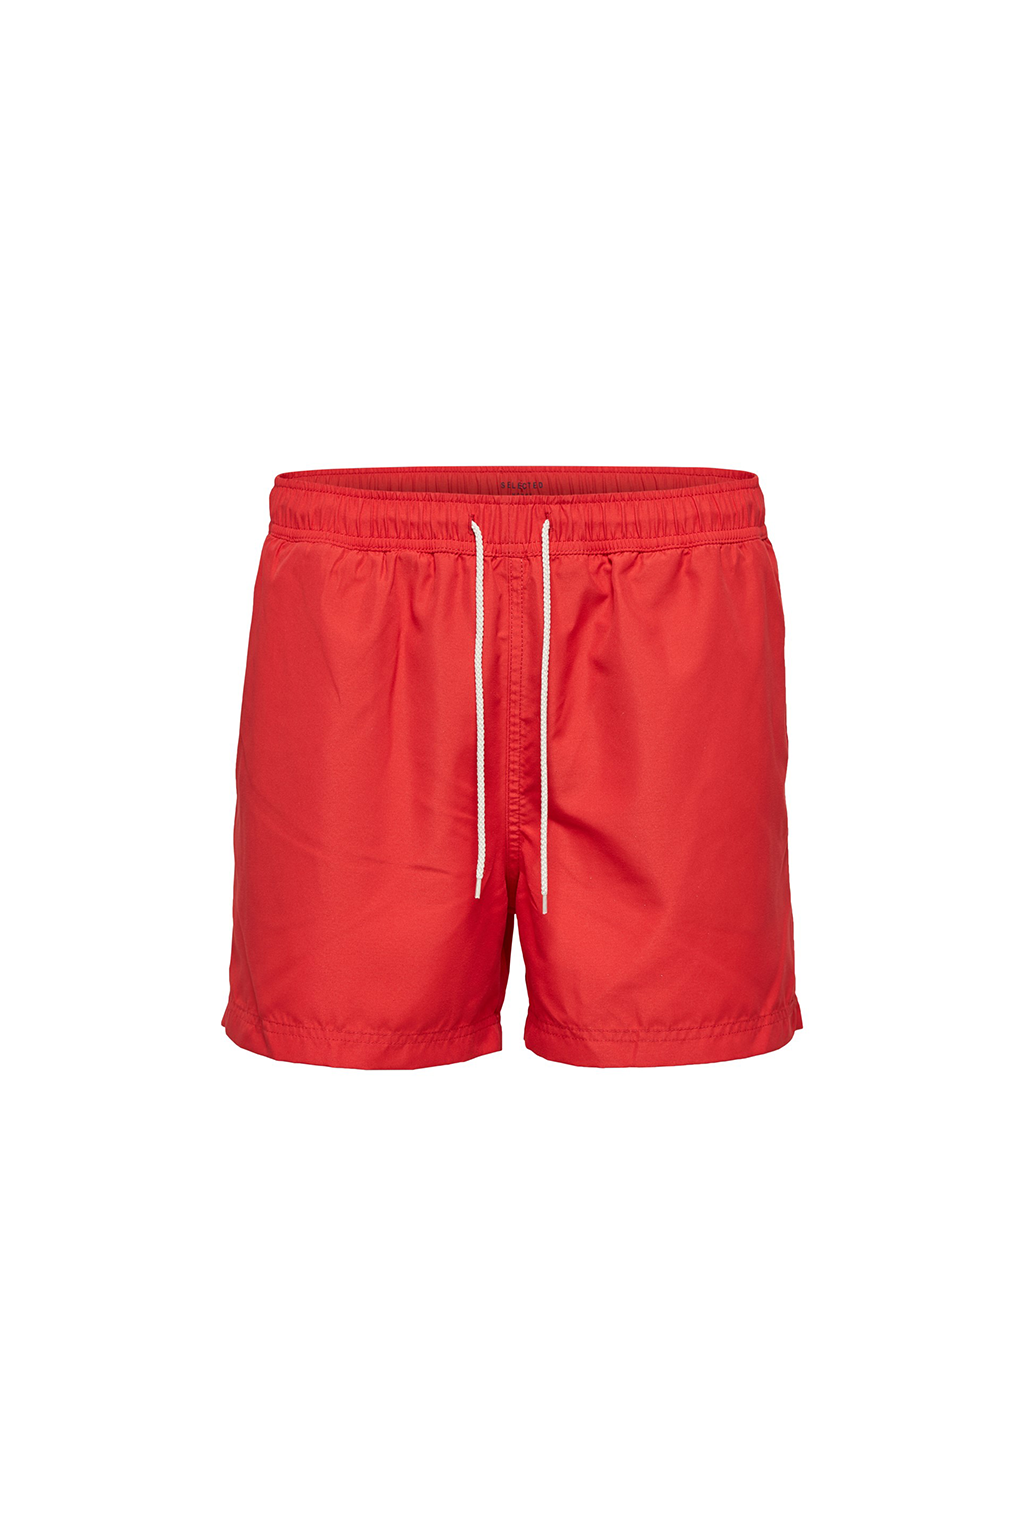 Classic Color Swim Shorts - Red - Audace Copenhagen